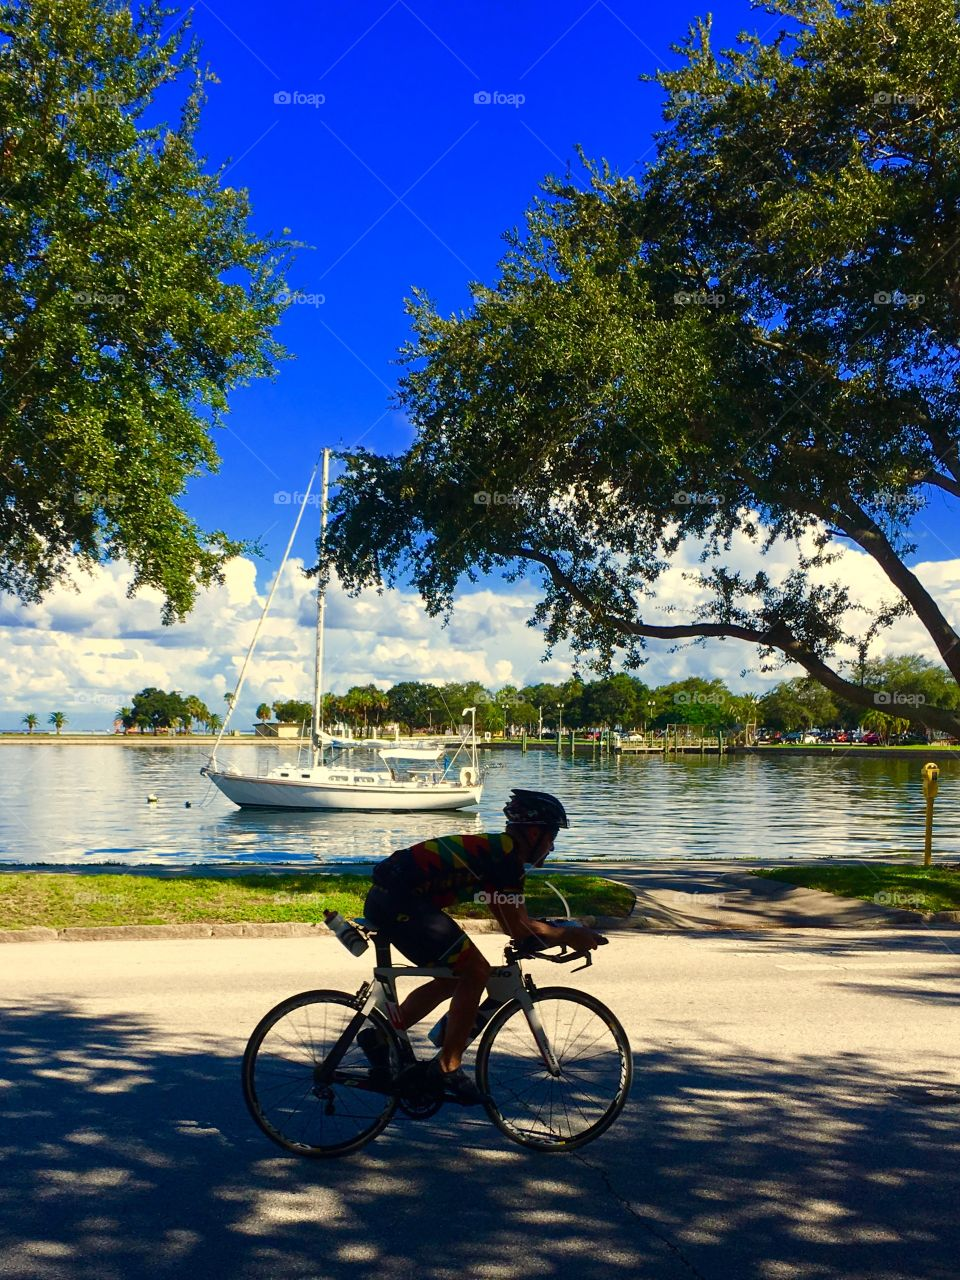 Bike rider and sailboat together